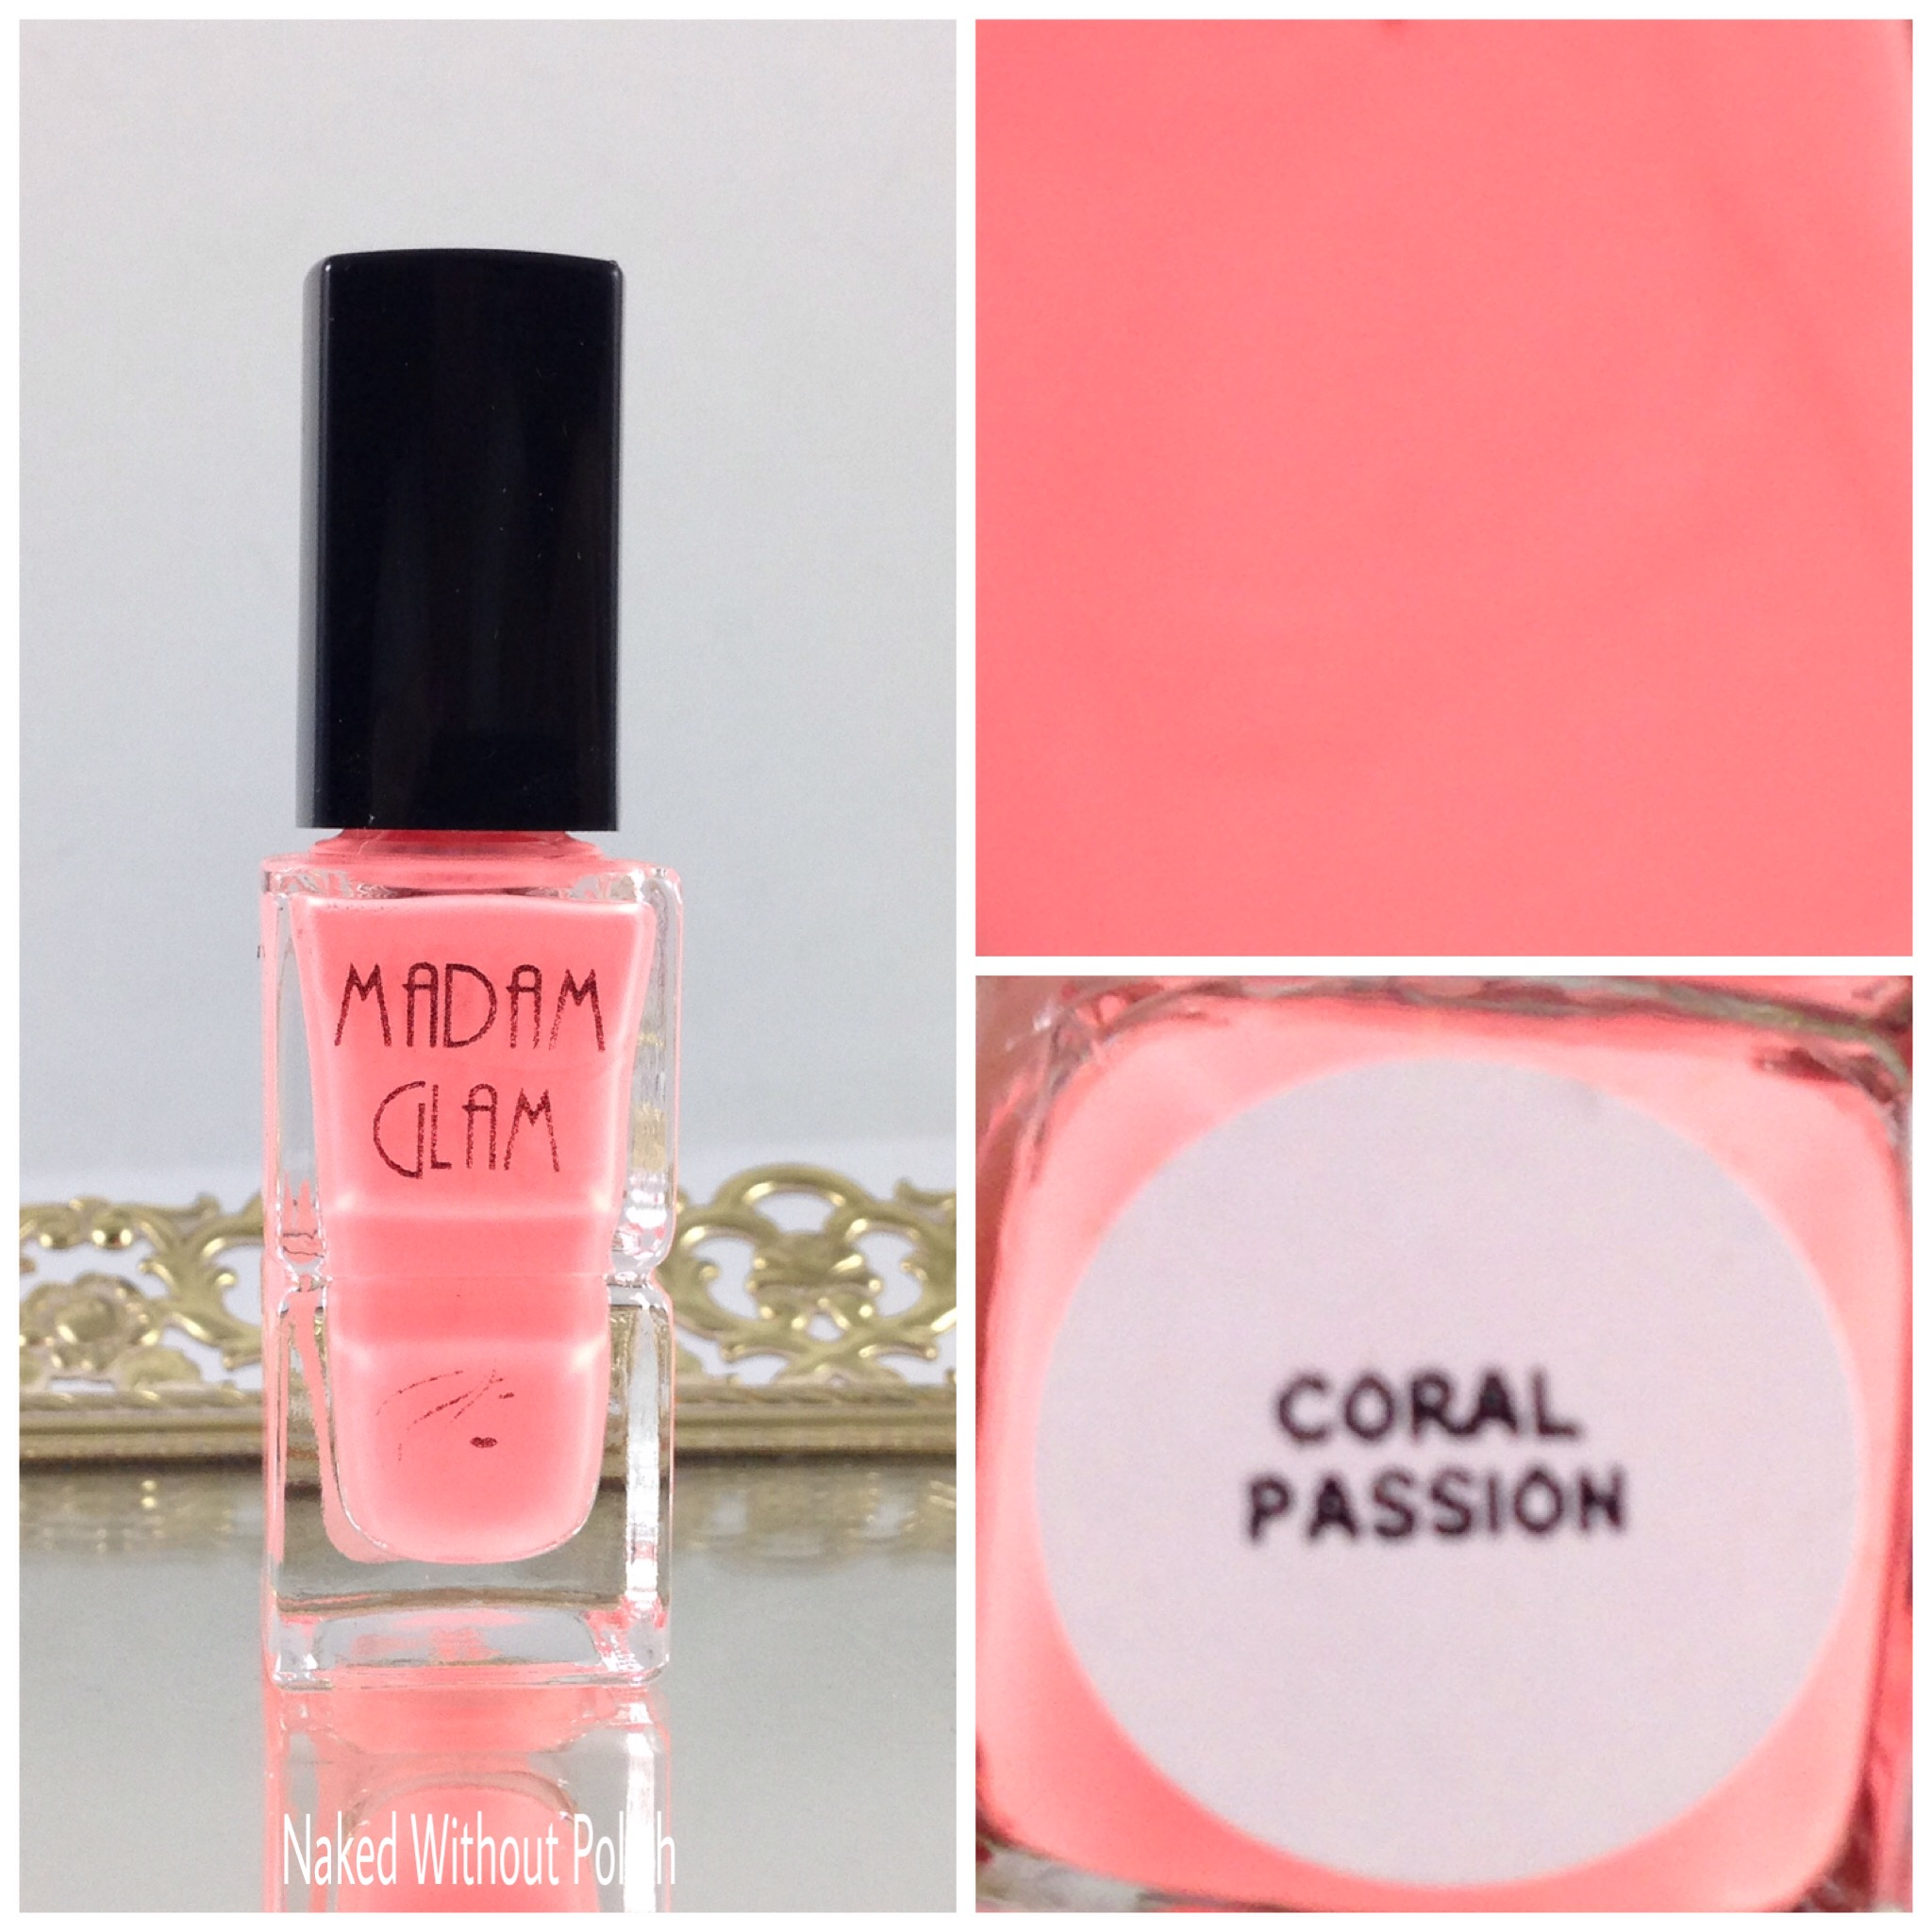 Madam-Glam-Coral-Passion-1